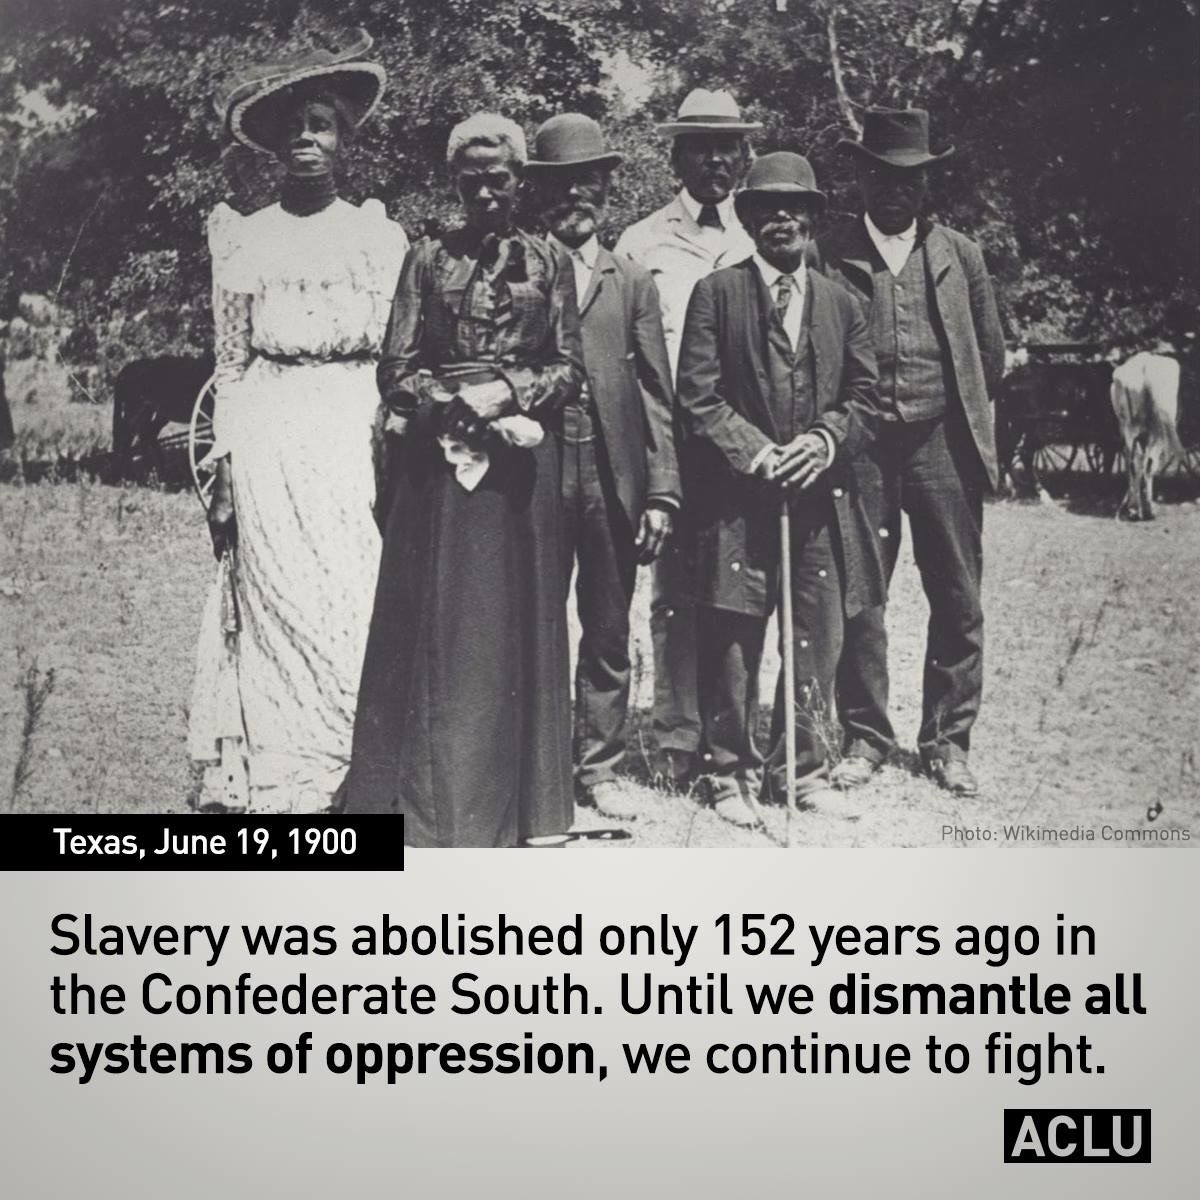 We're celebrating #Juneteenth by continuing the fight for freedom for all